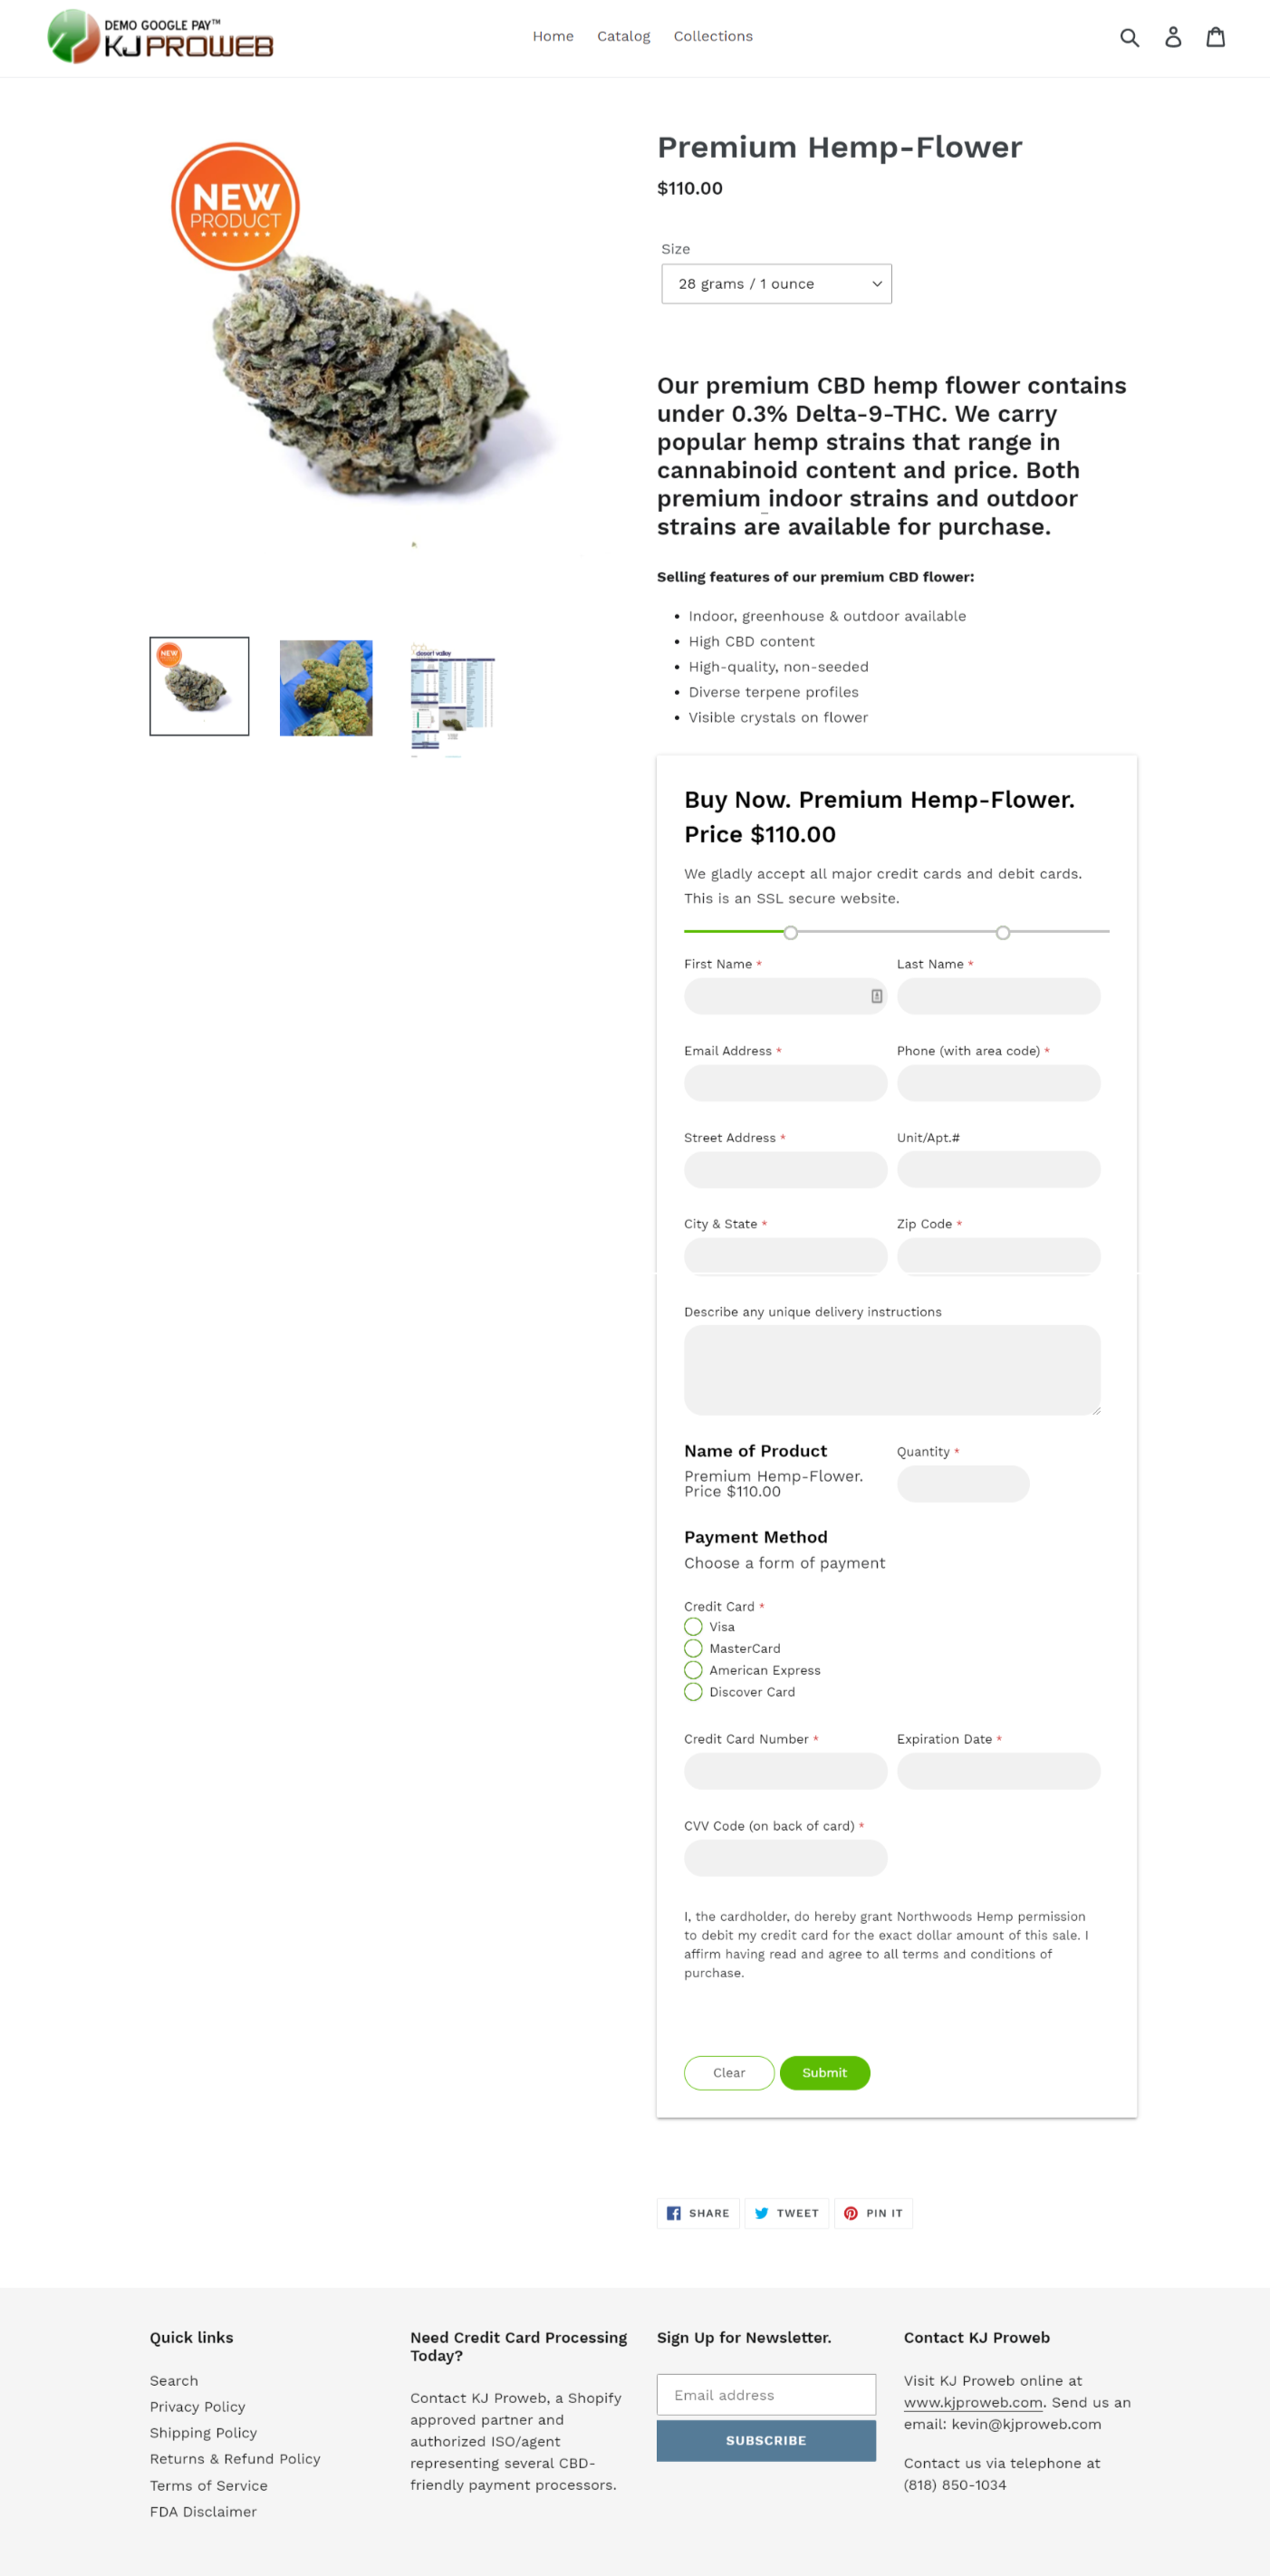 sample checkout page form credit card acceptance